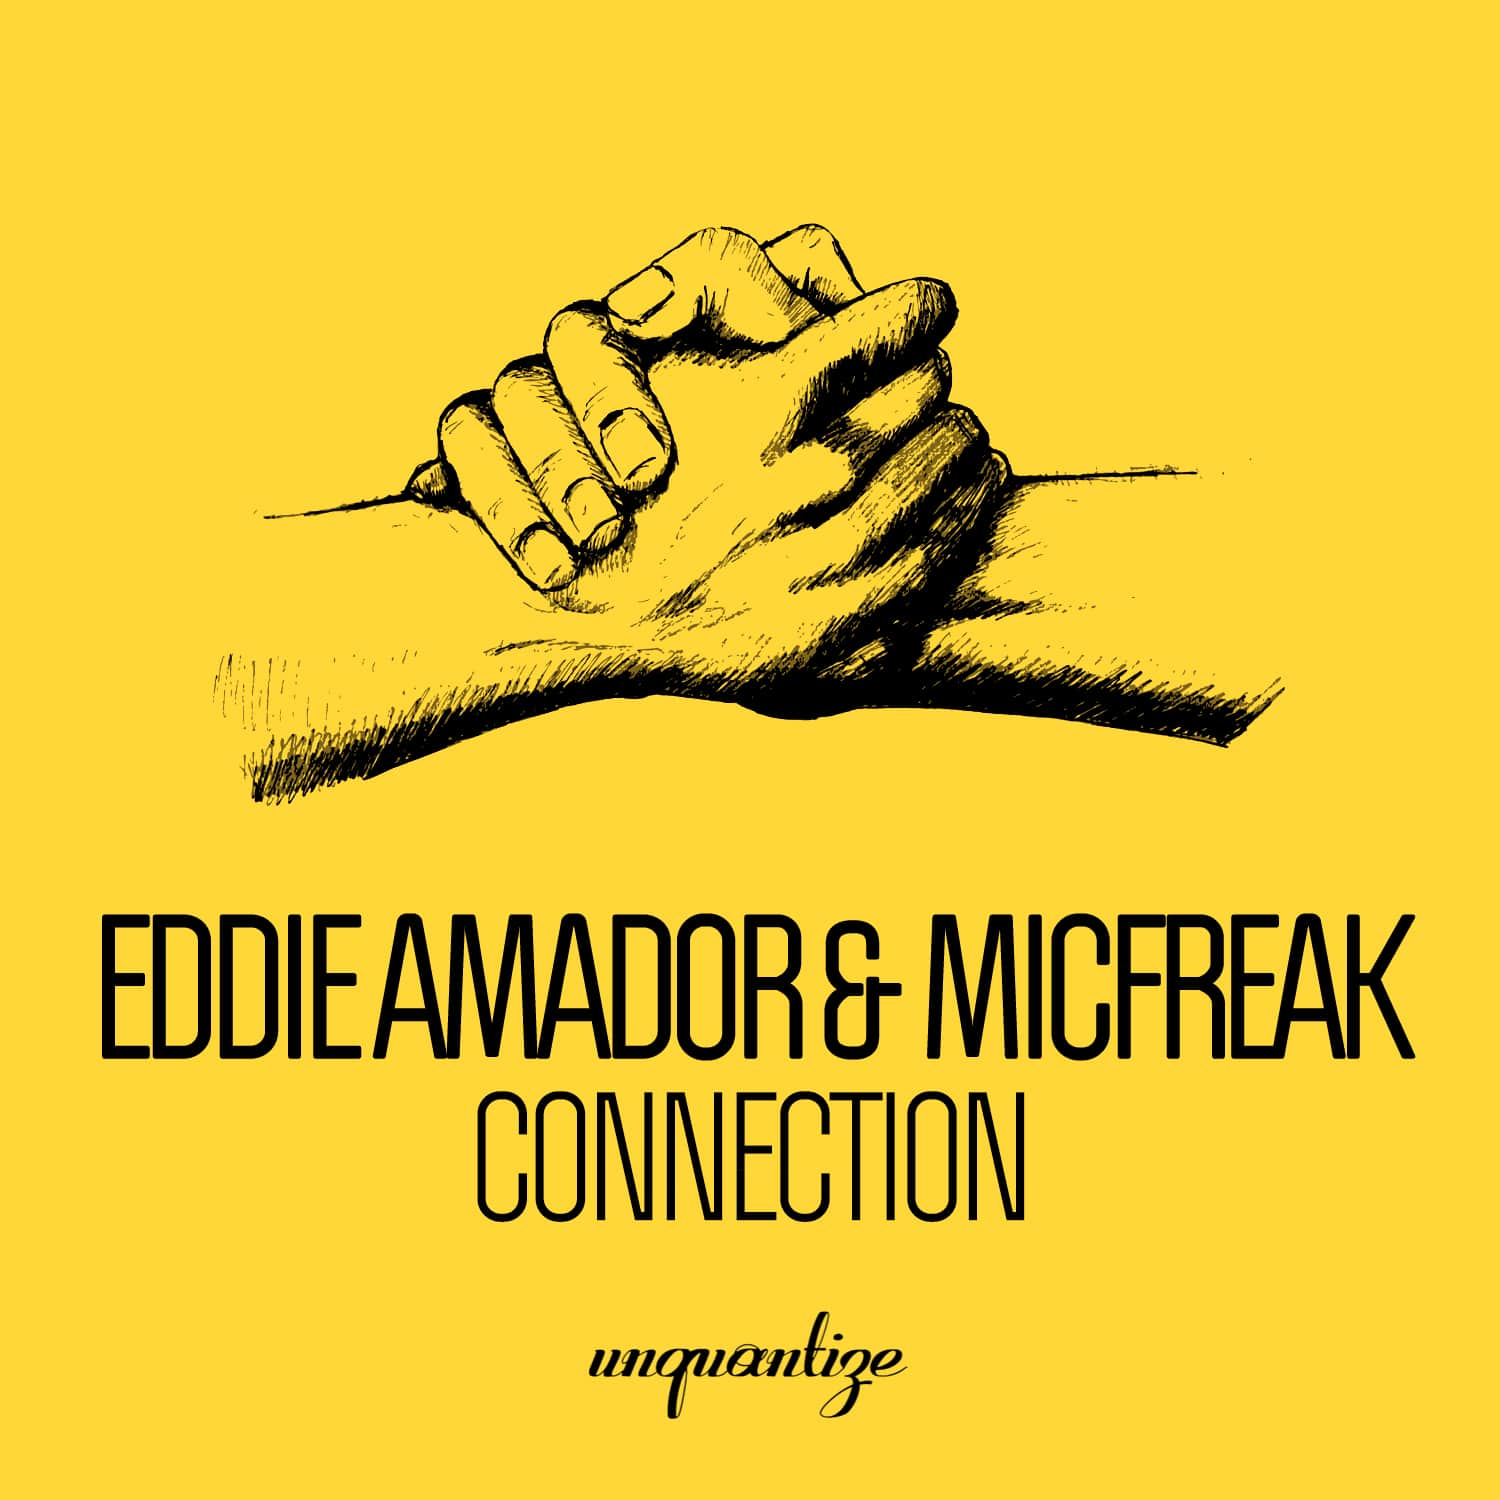 Premiere Eddie Amador And Micfreak Release Quot Connection